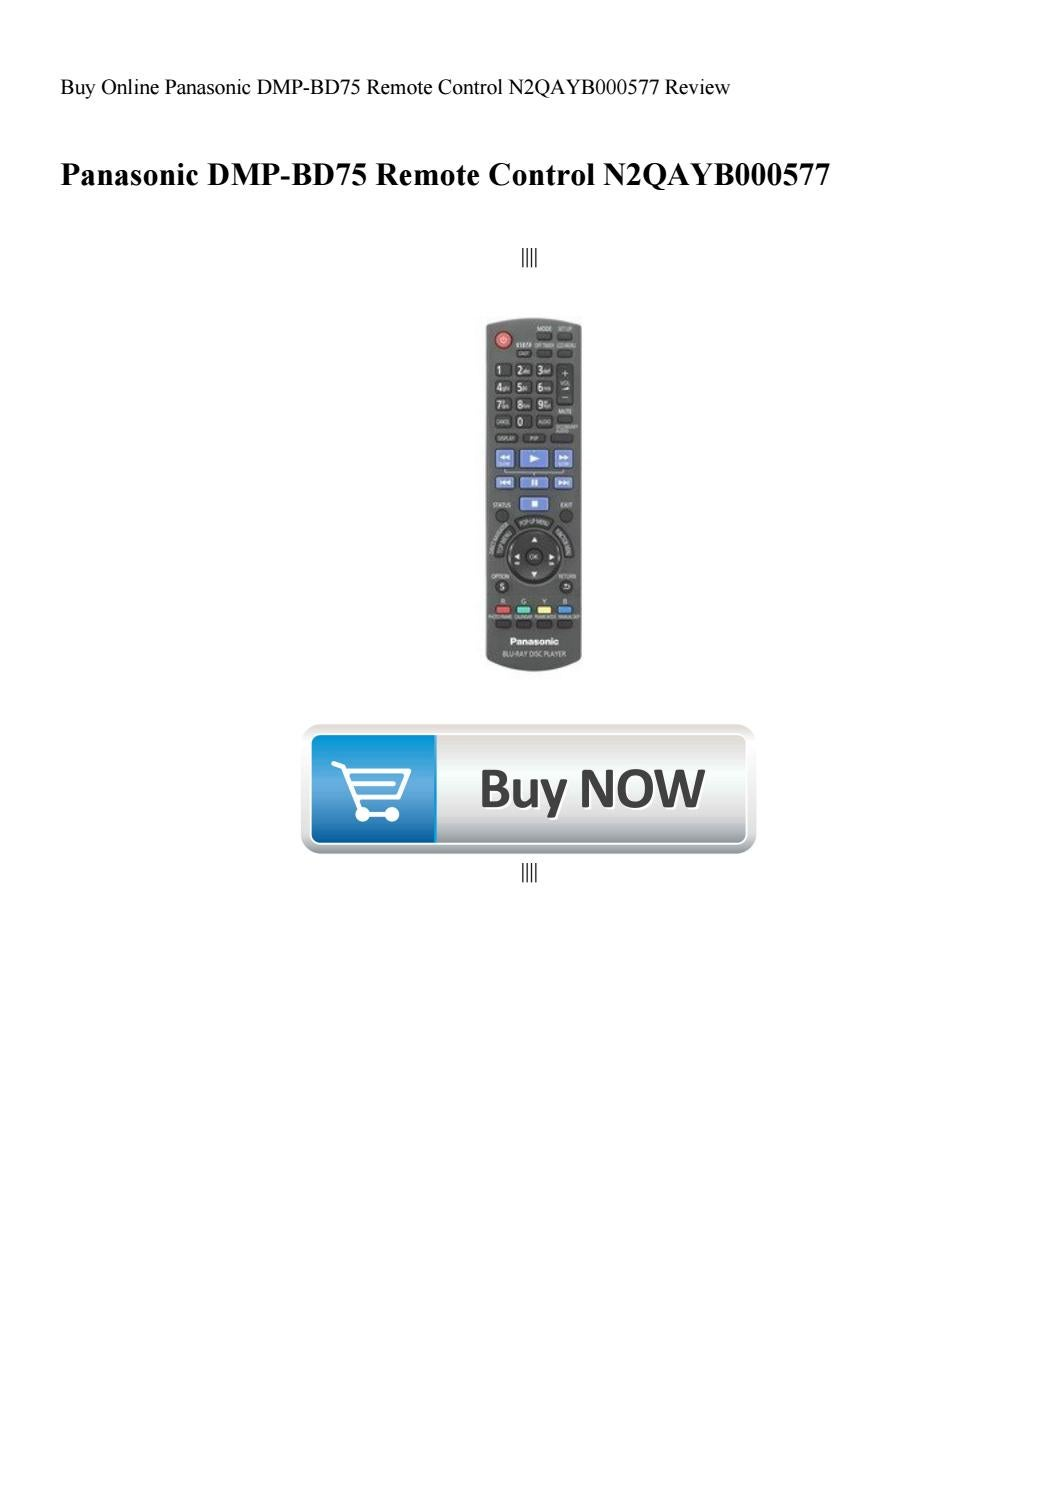 Buy Online Panasonic DMP-BD75 Remote Control N2QAYB000577 Review by